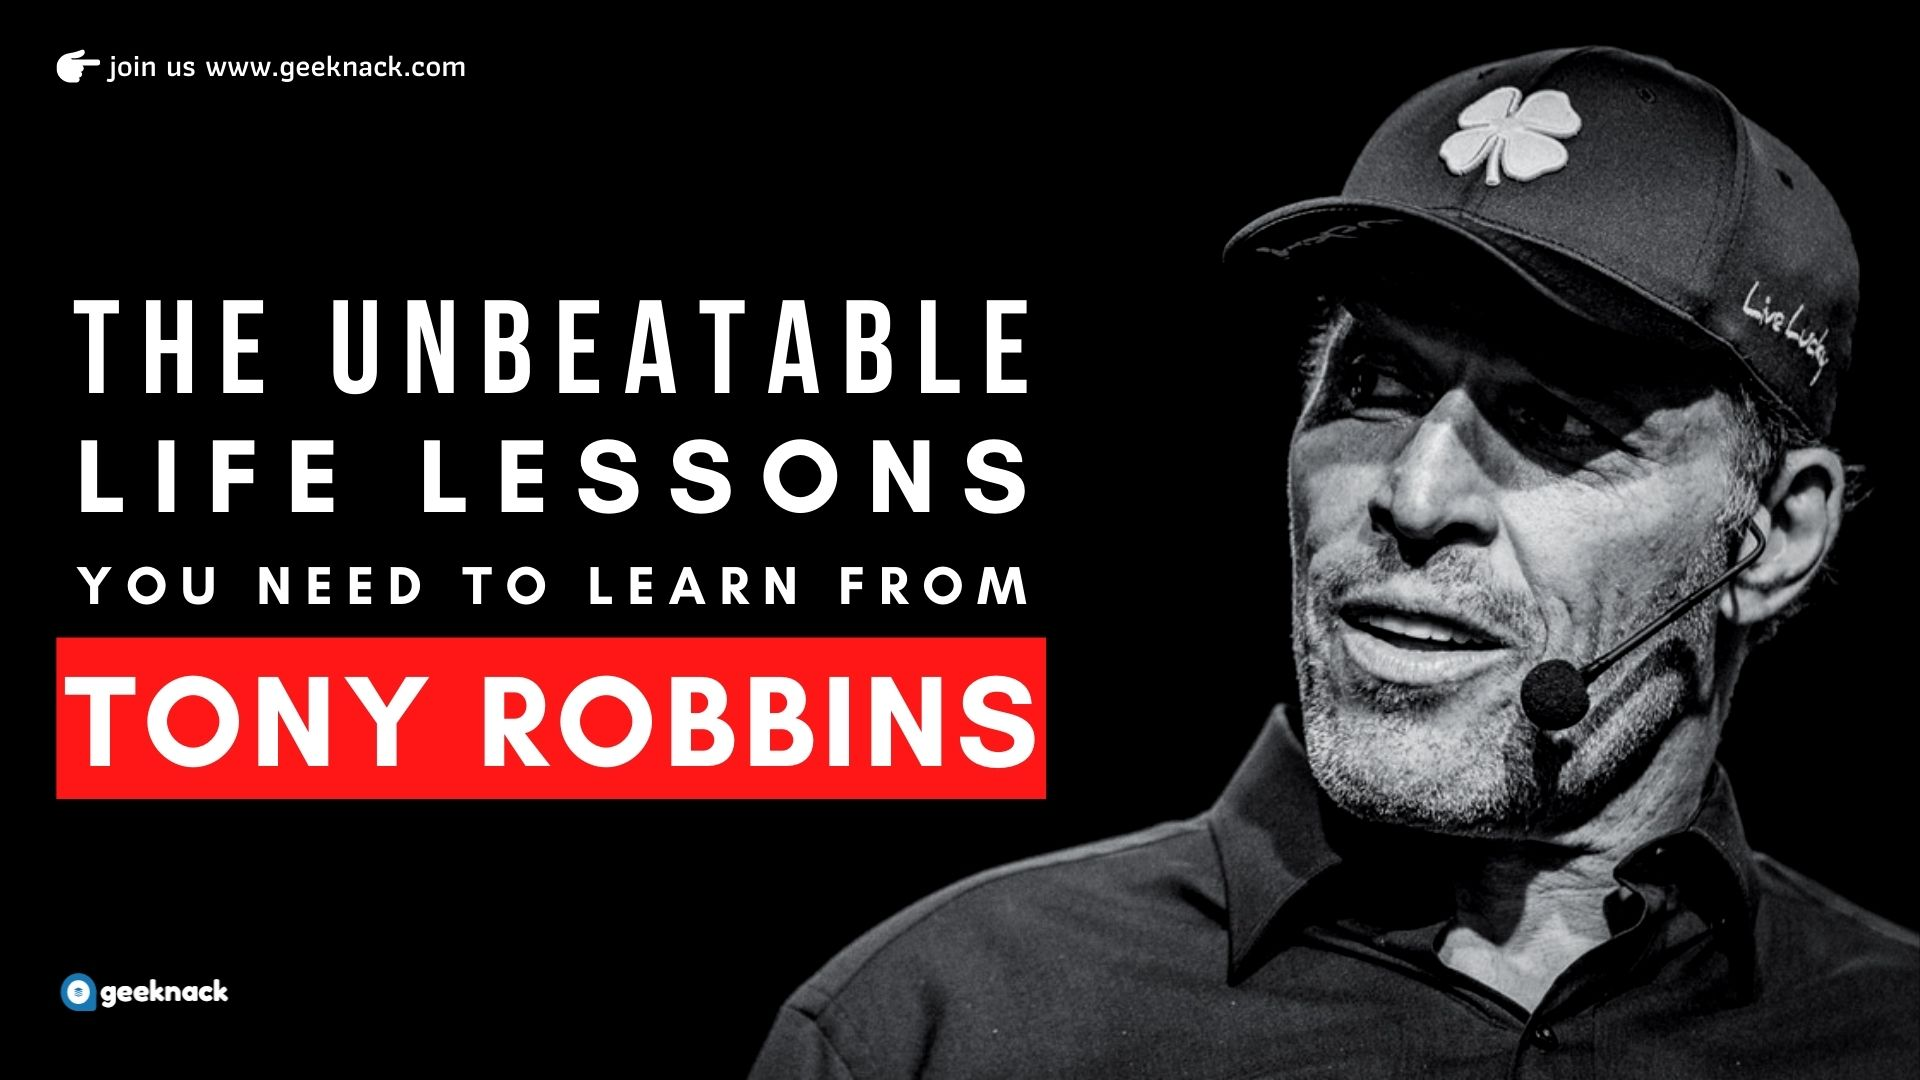 The Unbeatable Life Lessons You Need To Learn From Tony Robbins